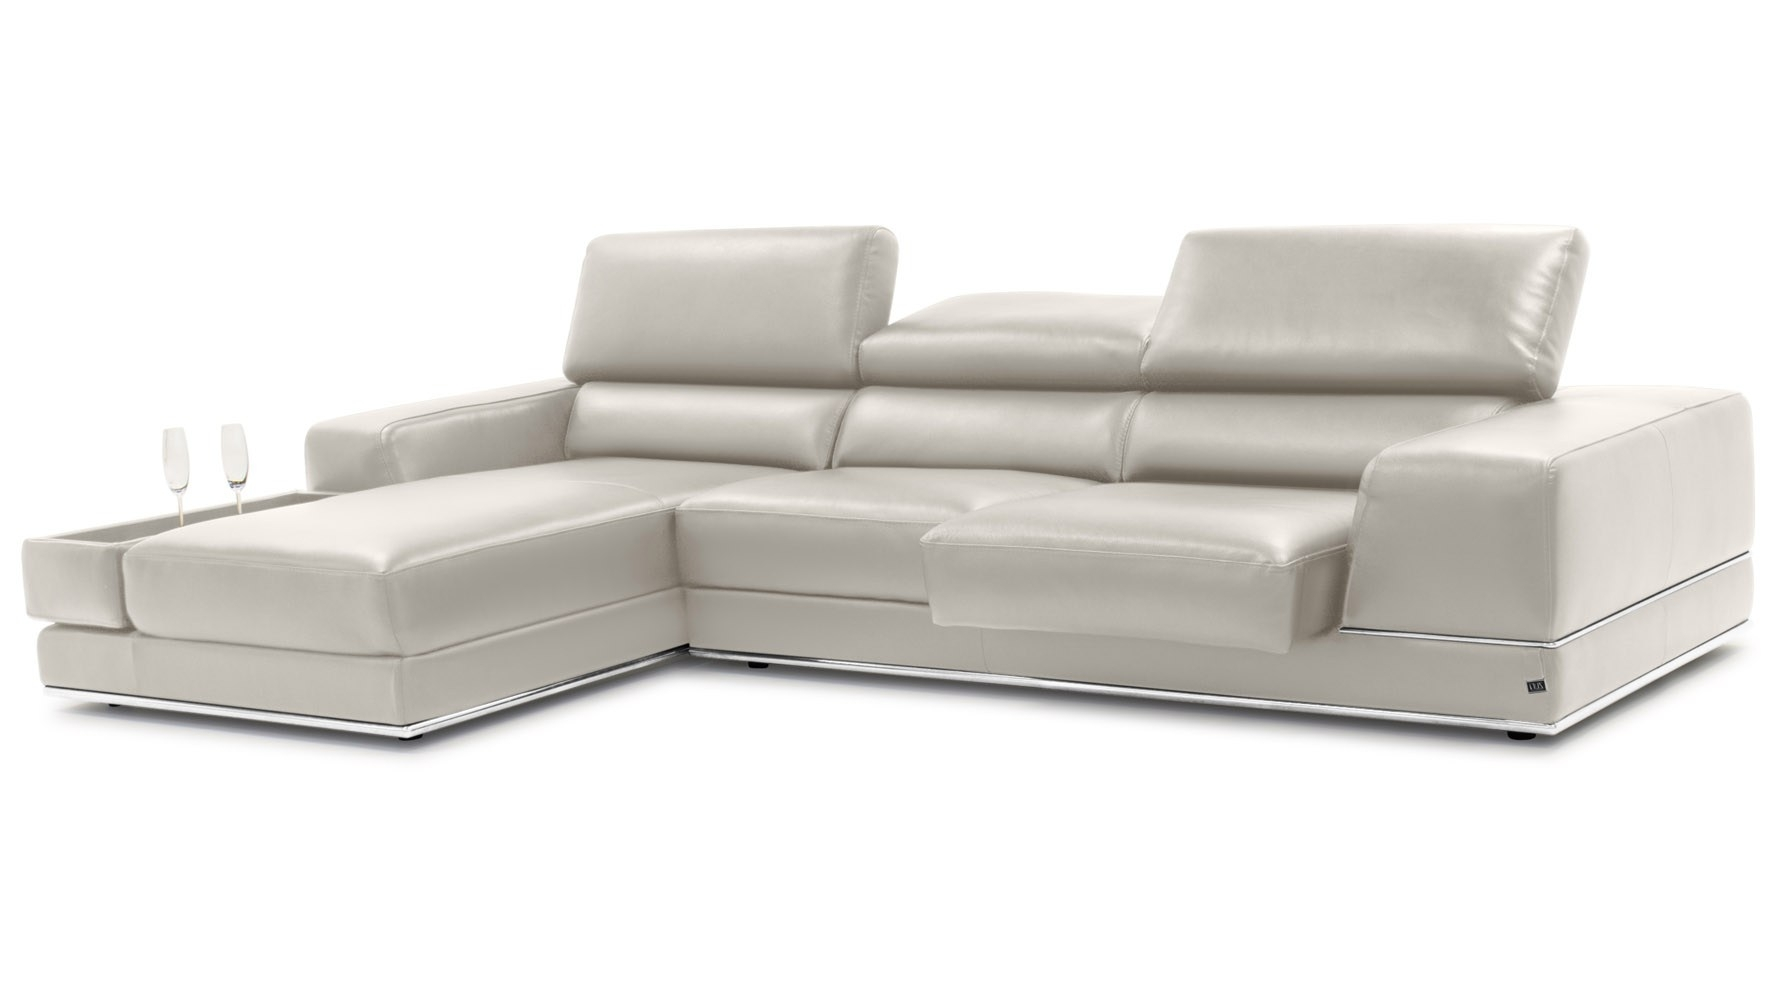 Dazzling Tenny Grey Piece Left Facing Chaise Sectional Headrest Been intended for Tenny Dark Grey 2 Piece Right Facing Chaise Sectionals With 2 Headrest (Image 12 of 30)